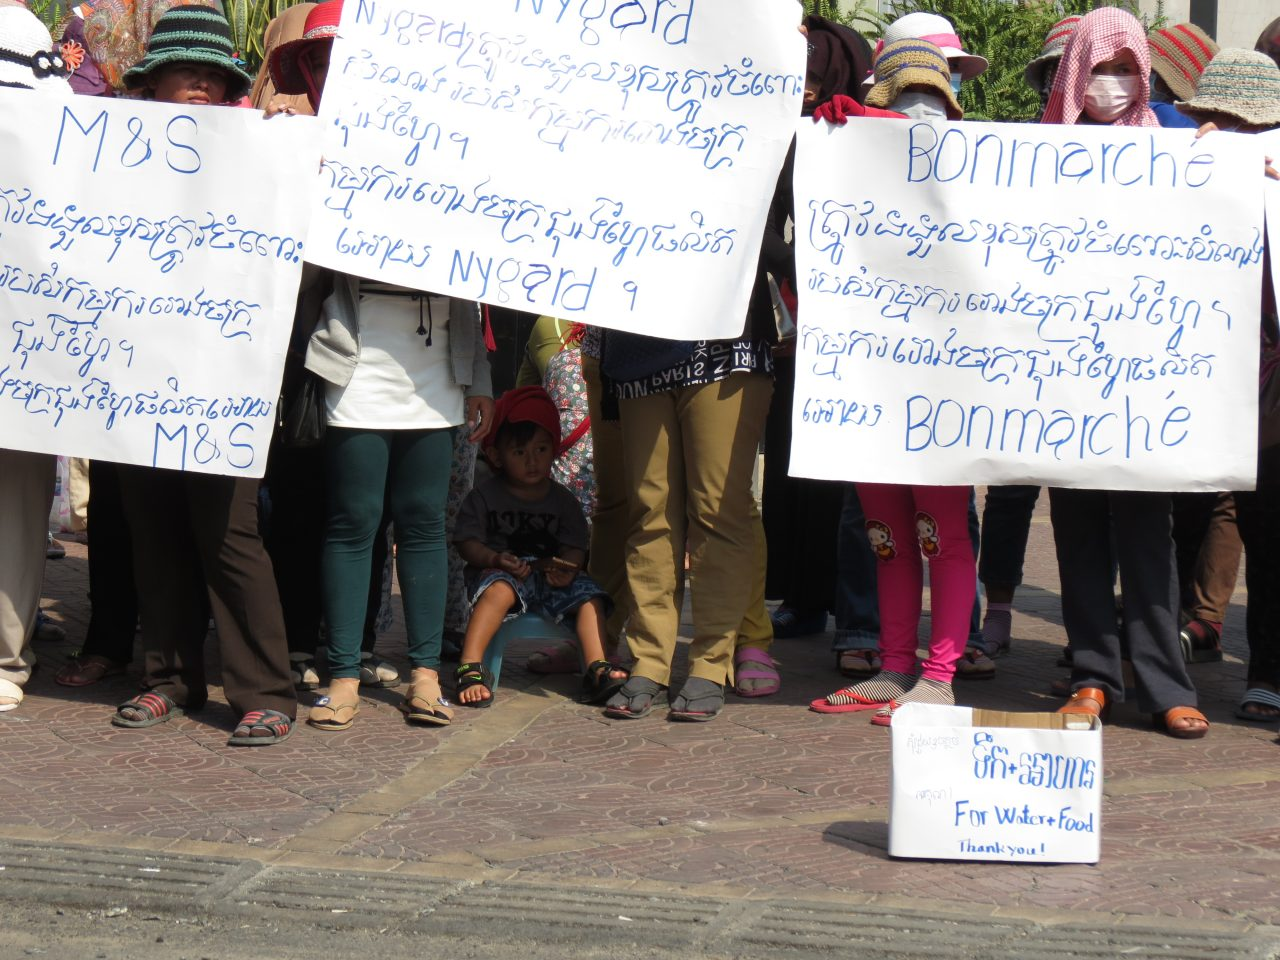 M&S, Bonmarché and Nygård should compensate Cambodian workers after factory closure